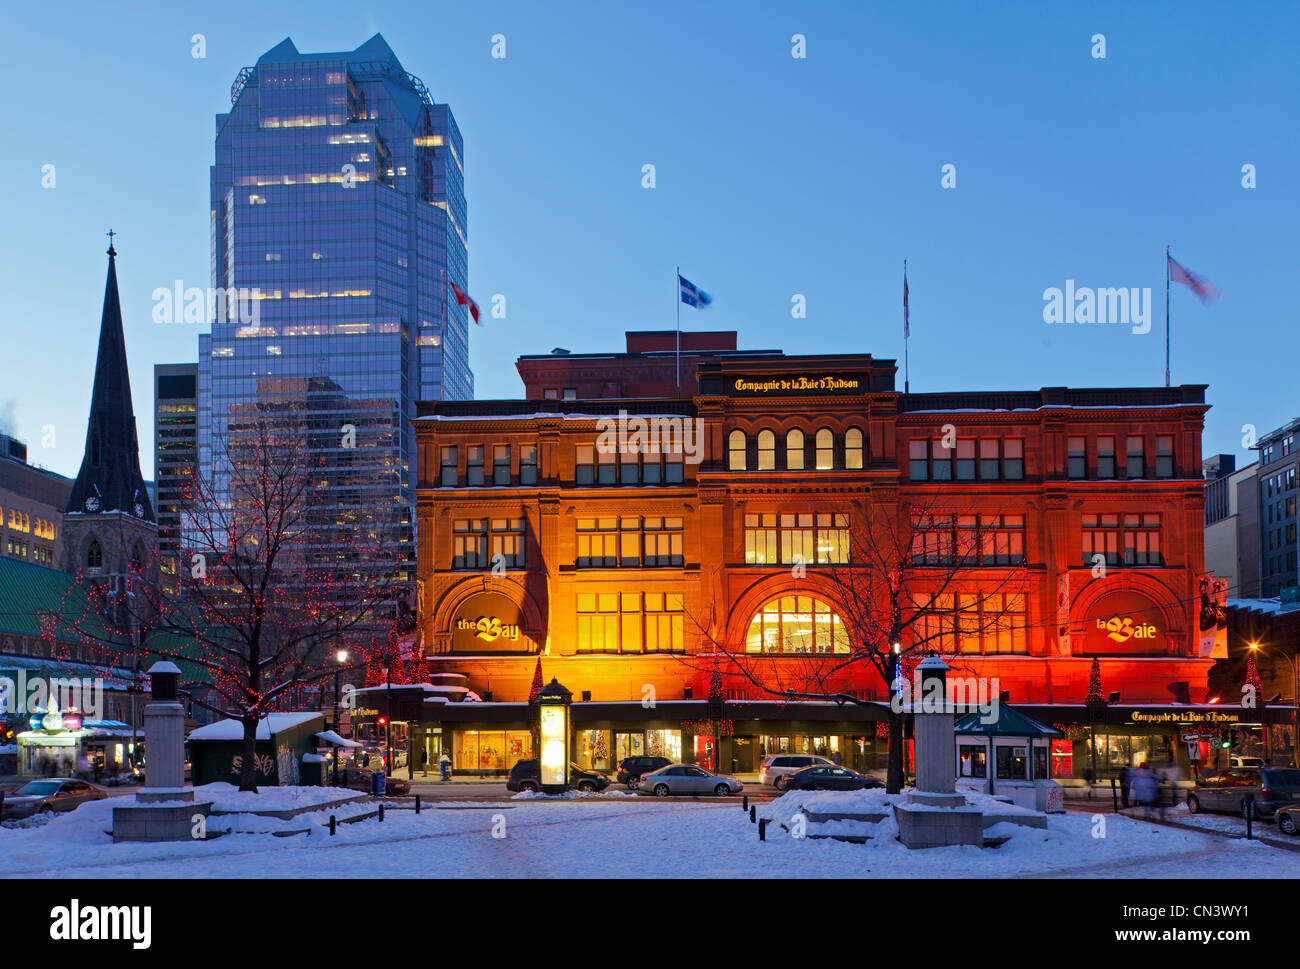 Lighting Stores In Montreal Canada Quebec Province Montreal Decorations And